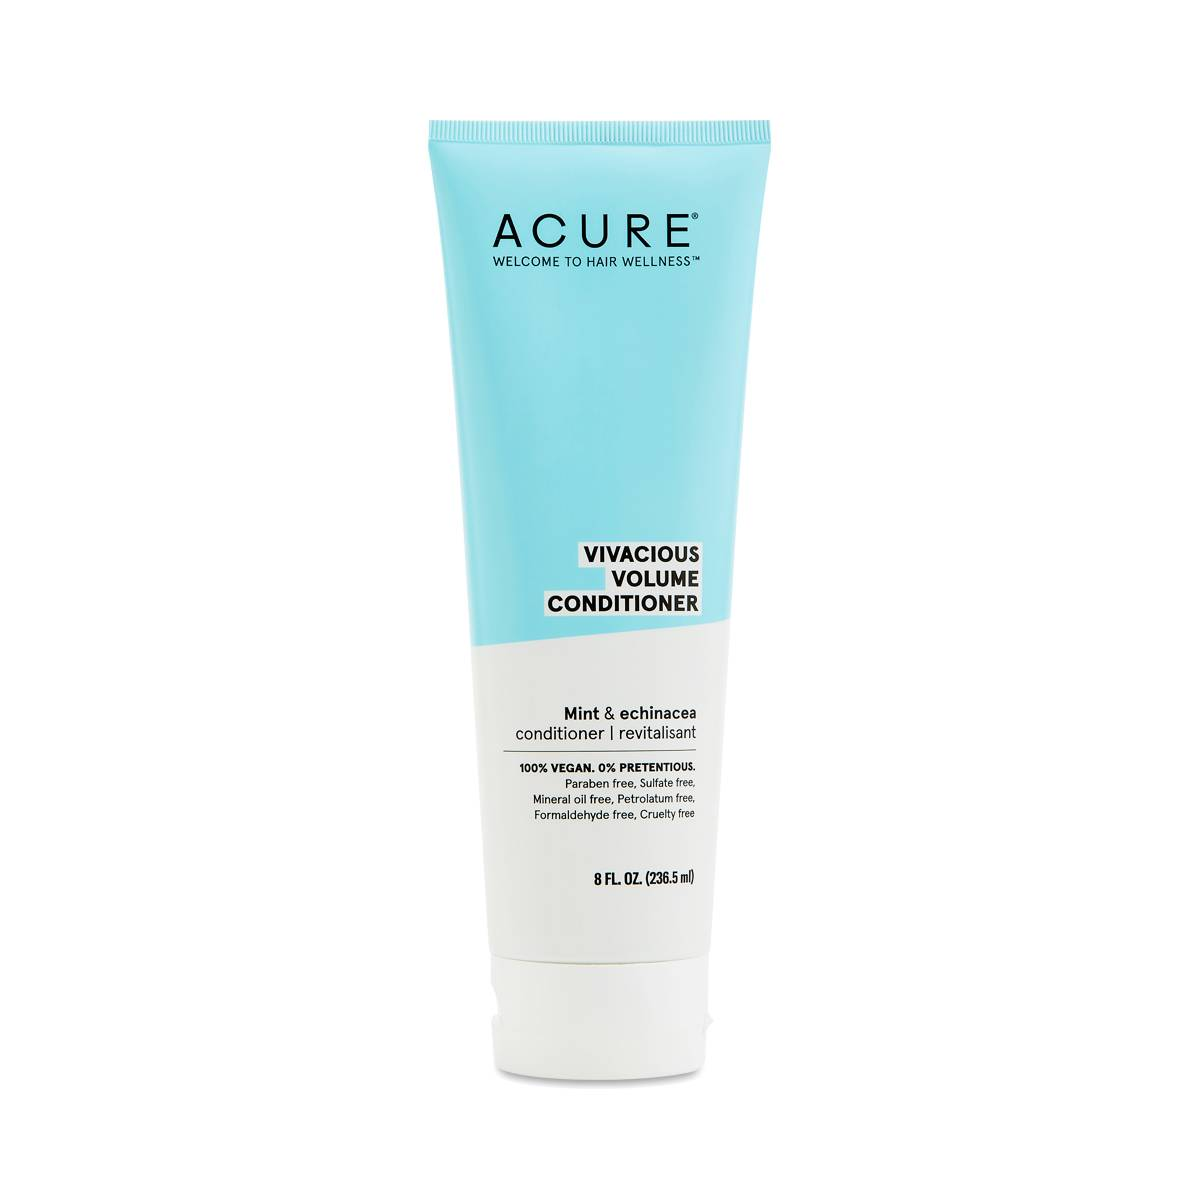 ACURE Vivacious Volume Conditioner, Mint & Echinacea